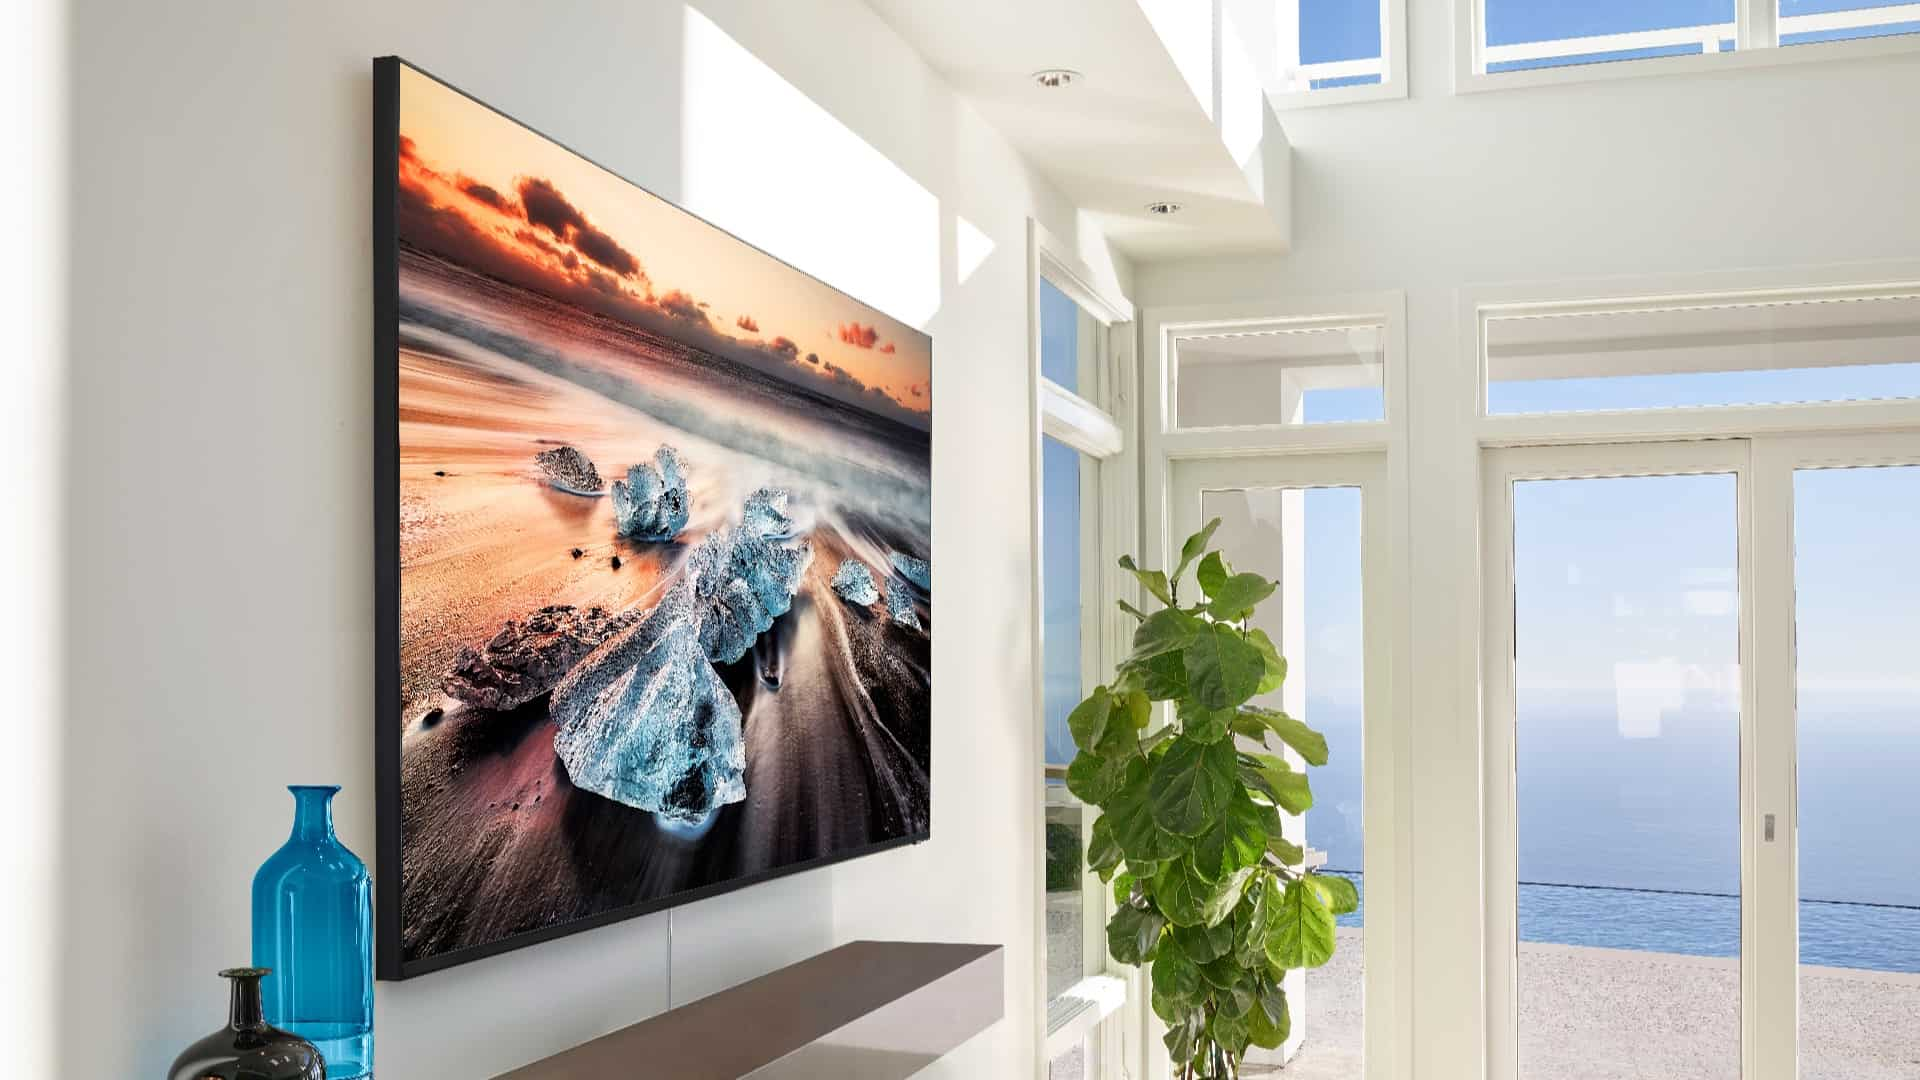 Previewing the Future of Television: Samsung 8K TV